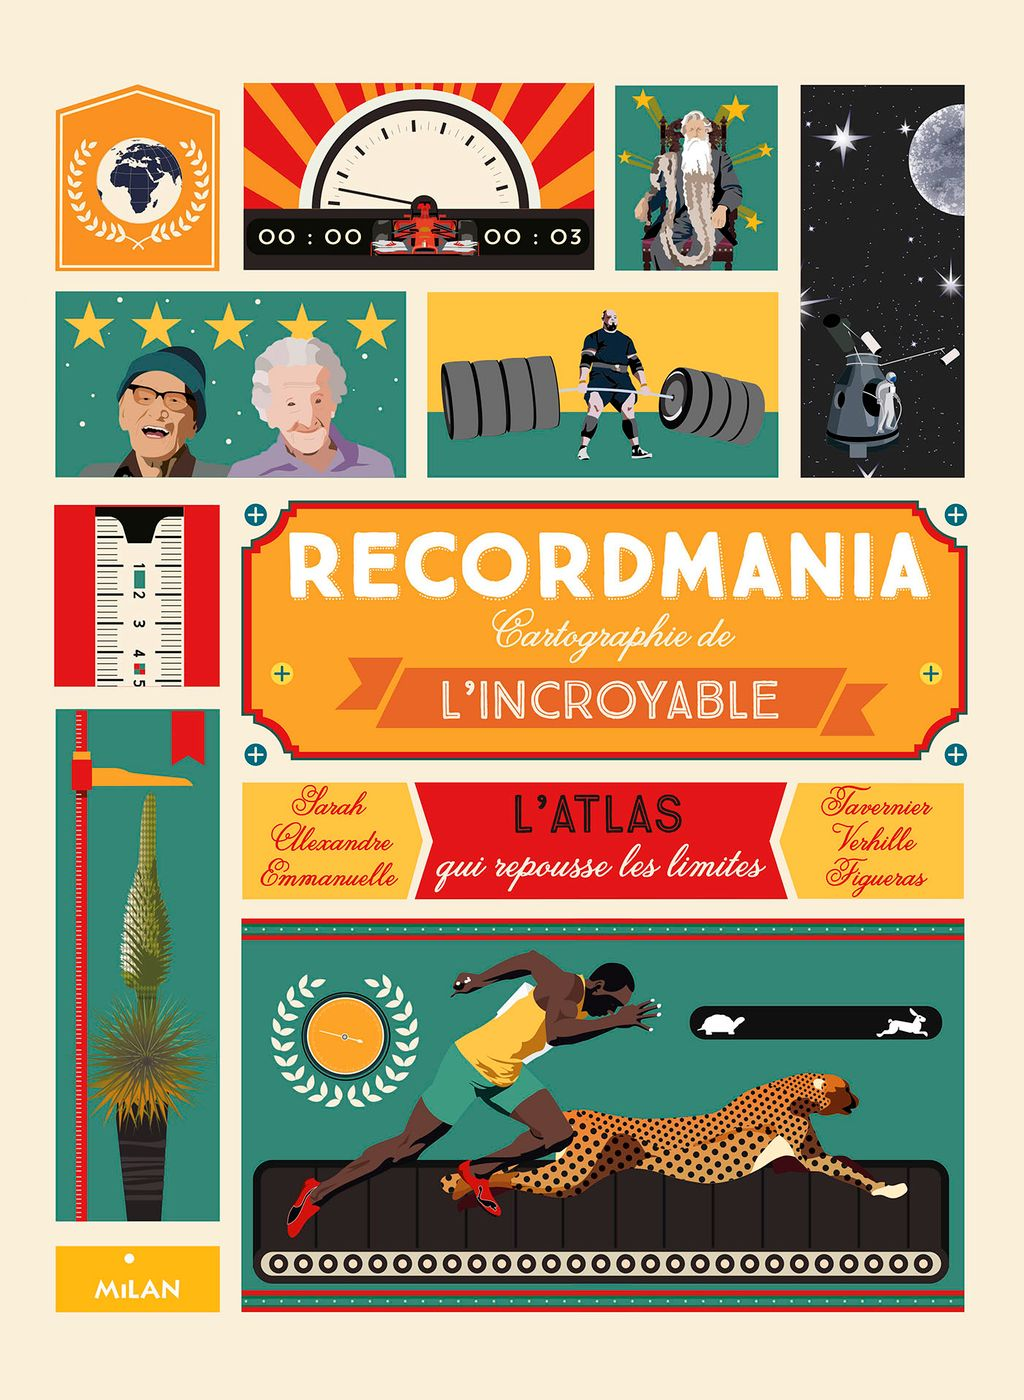 « Recordmania » cover